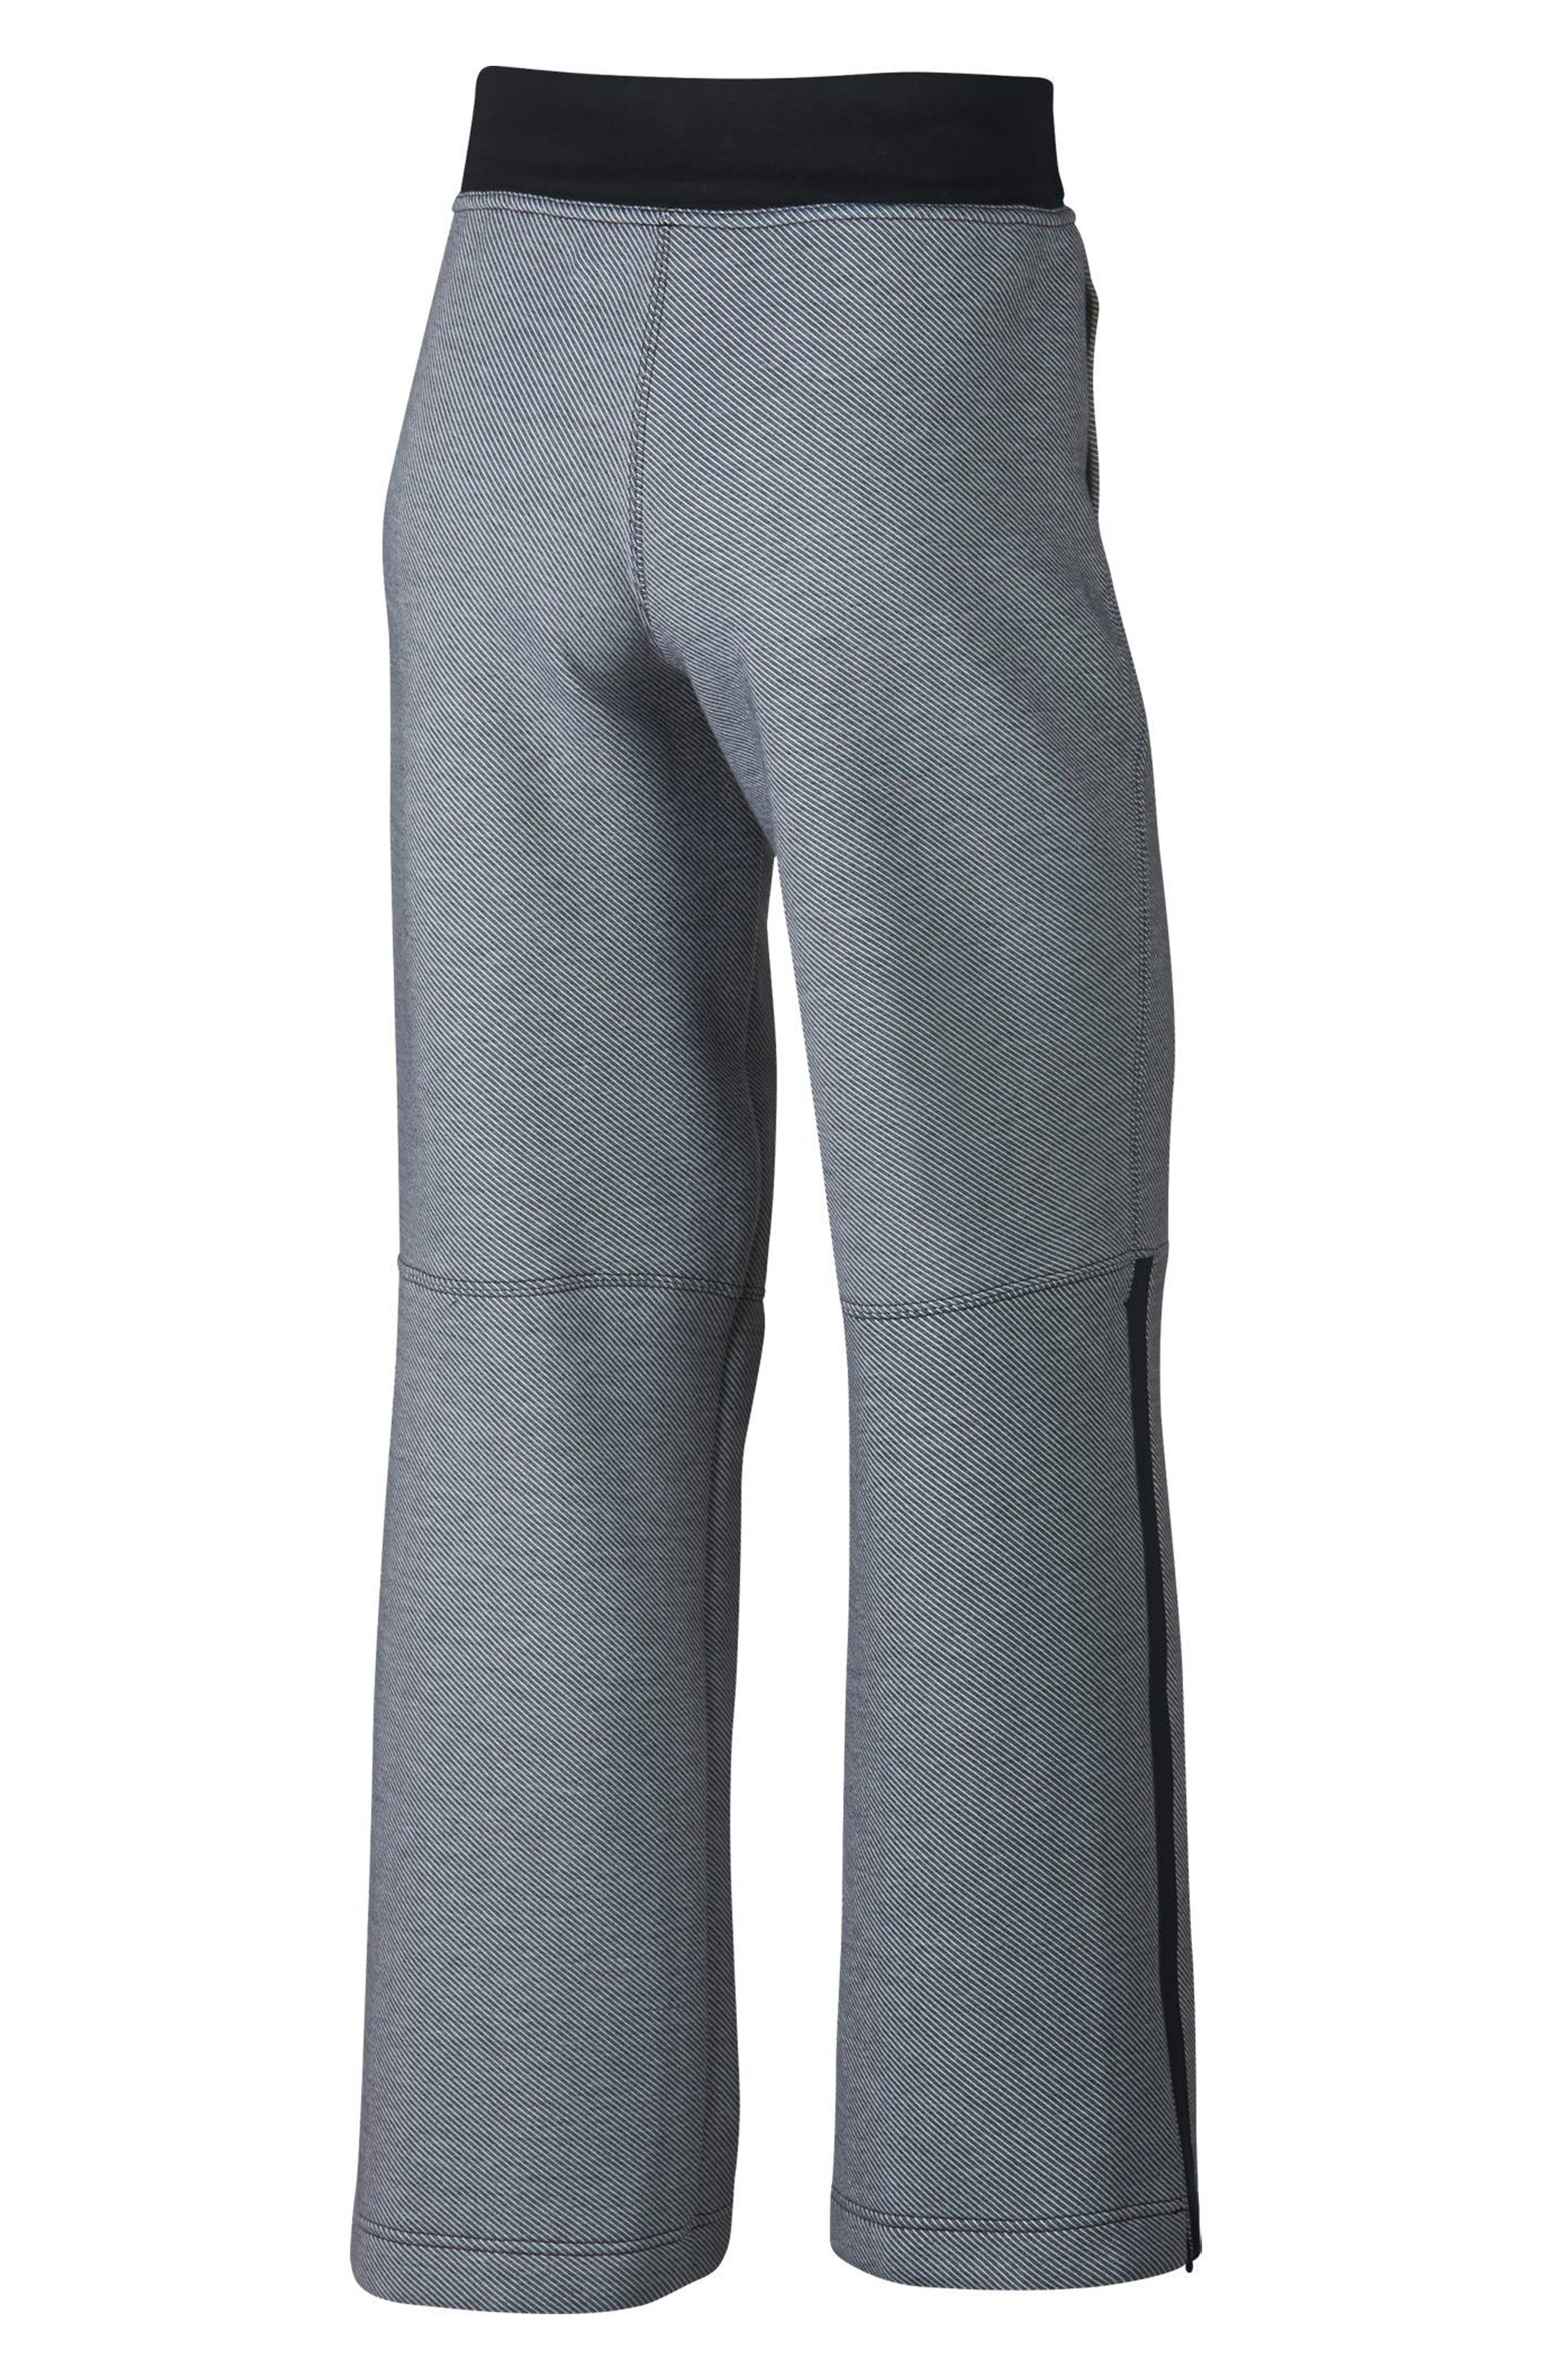 Drawstring Technical Pants,                             Alternate thumbnail 8, color,                             010